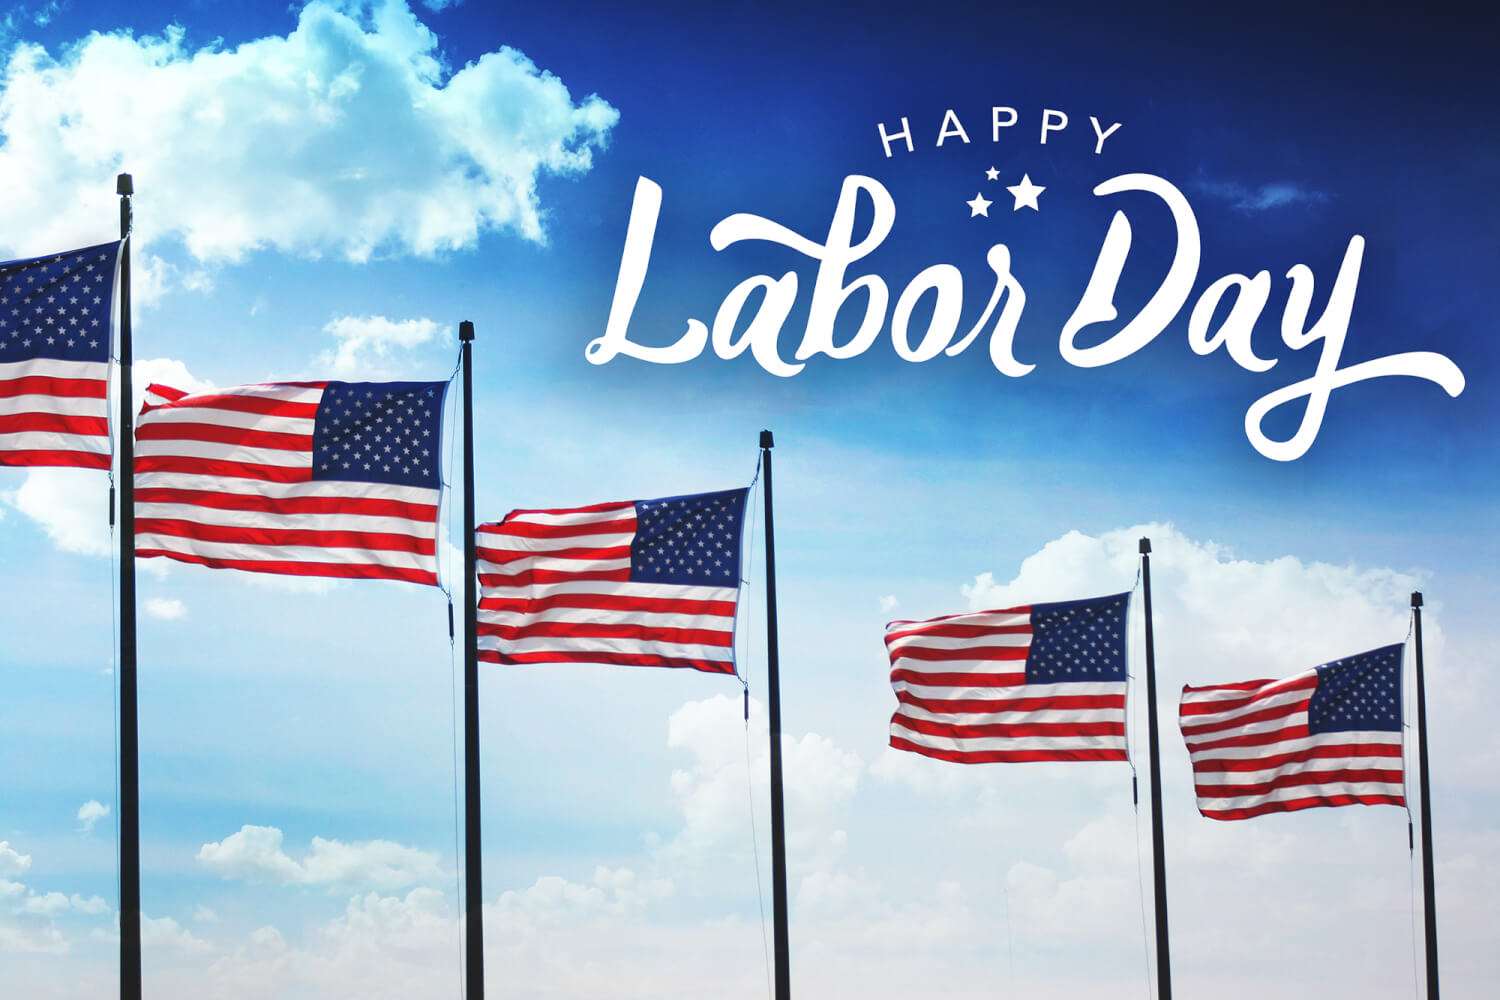 Happy Labor Day from Penmac!